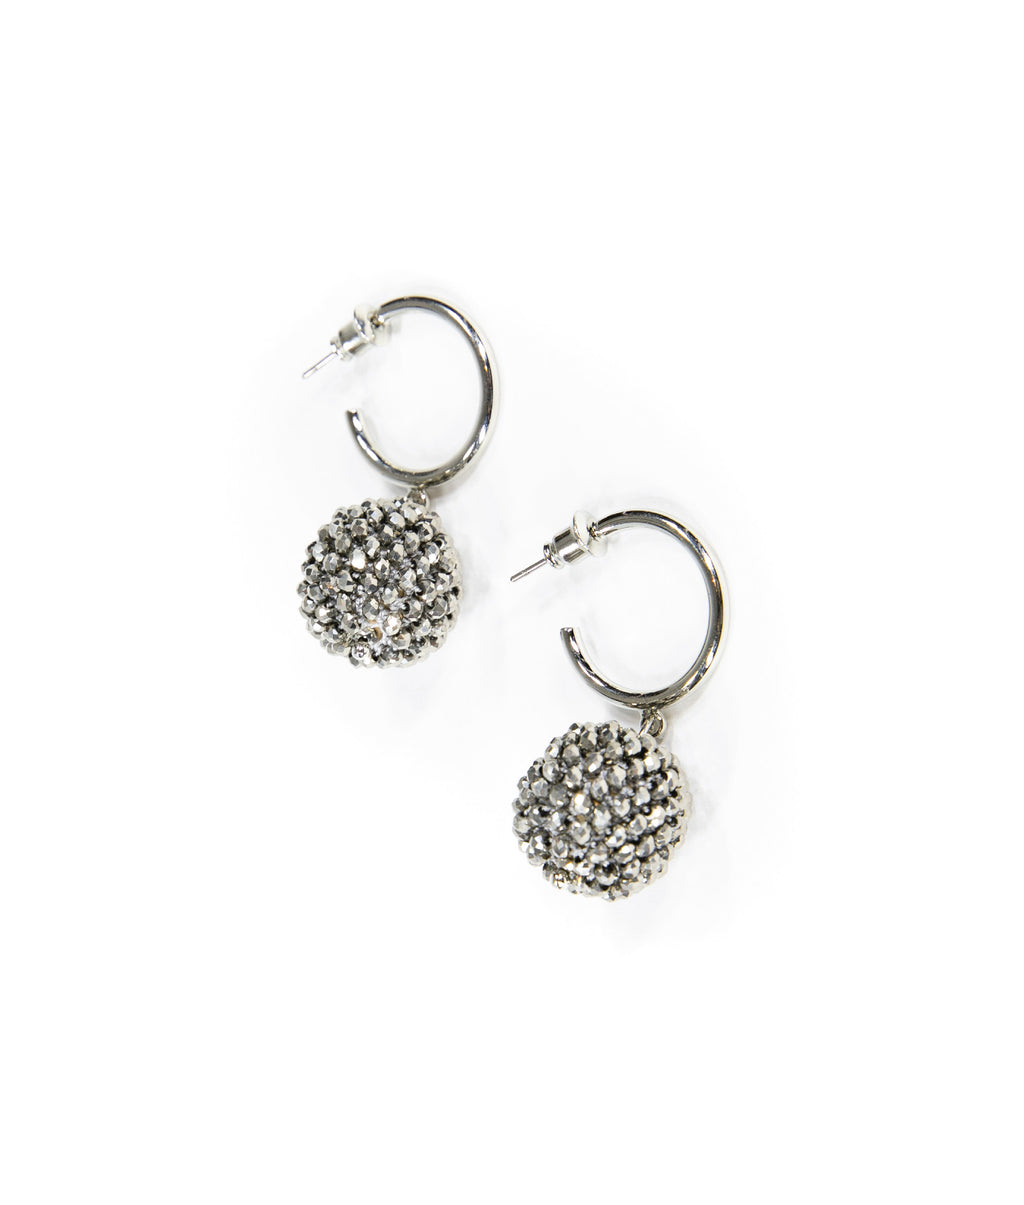 EARRINGS - Adagio Pewter